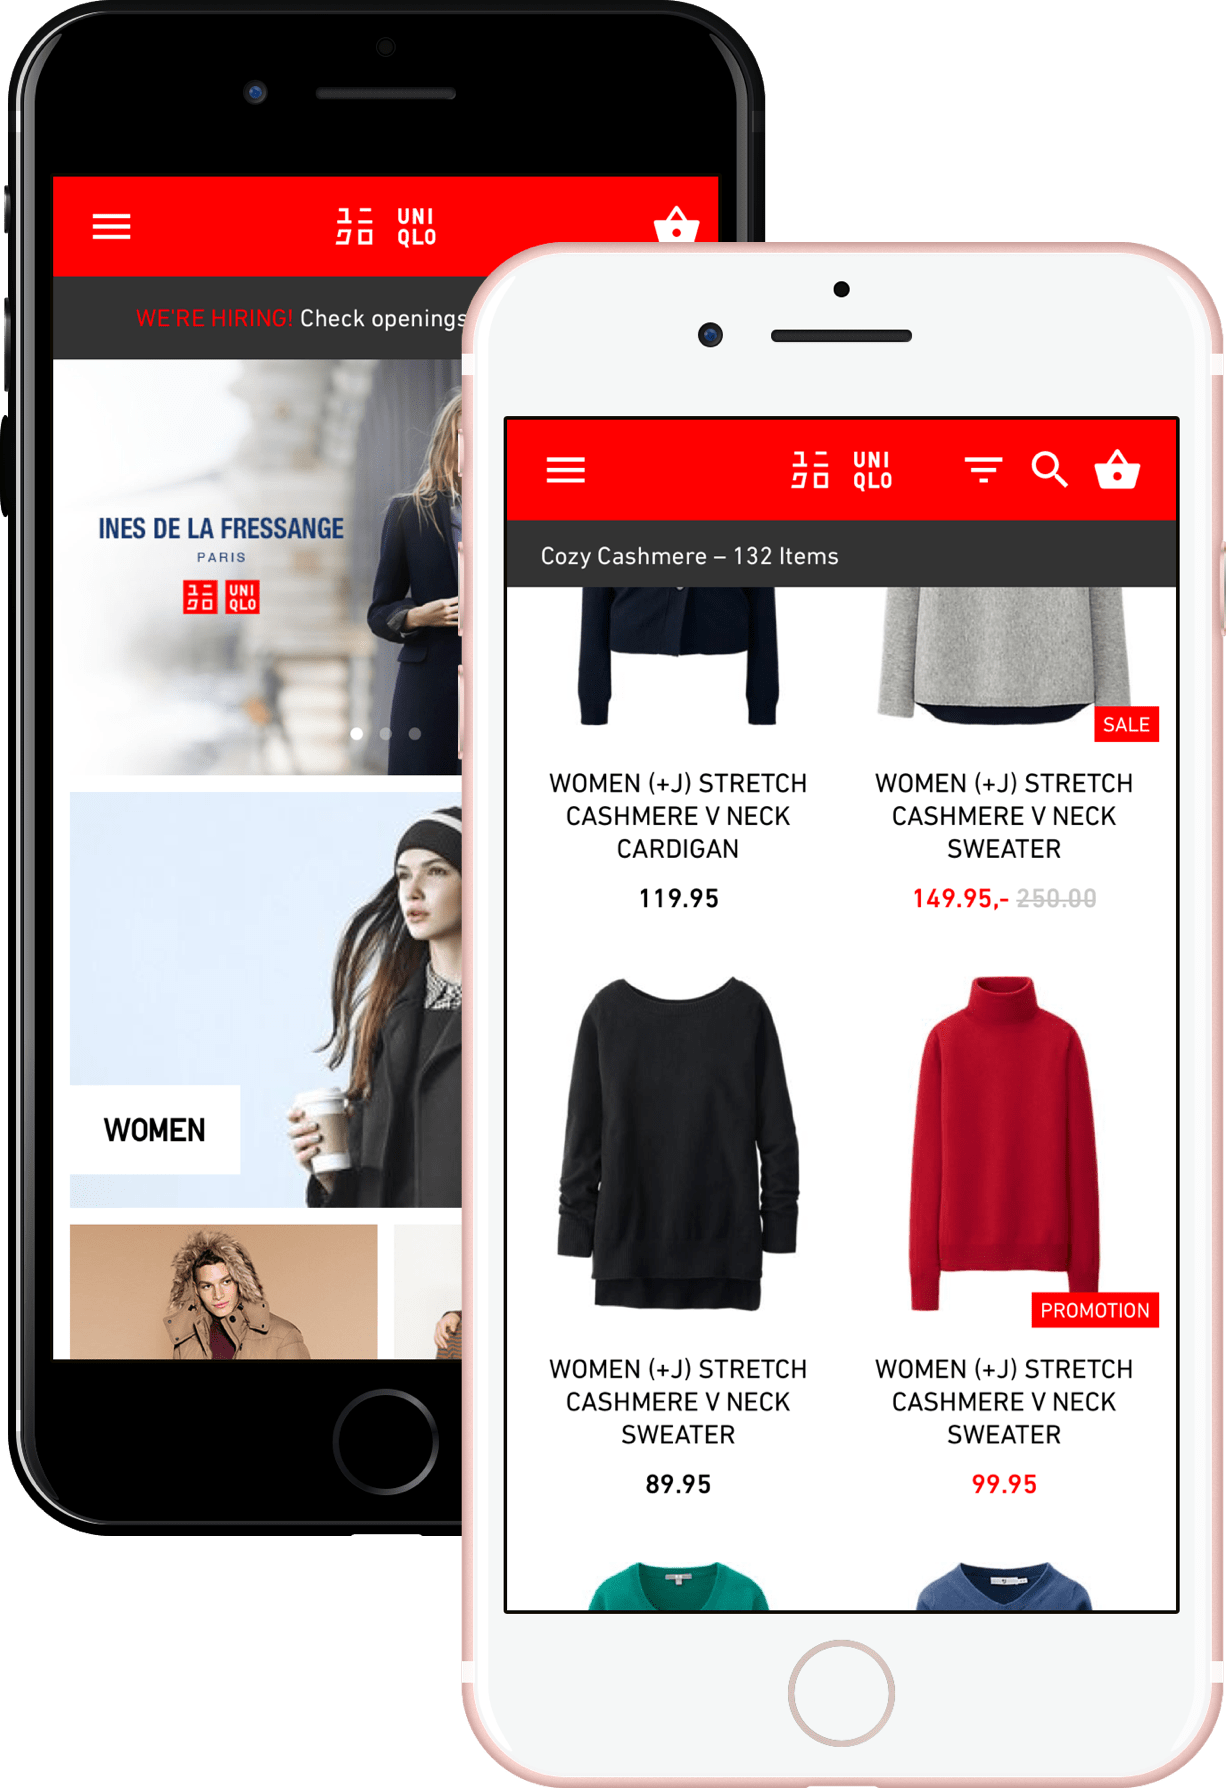 Case Study Of Uniqlo By Martin Broder